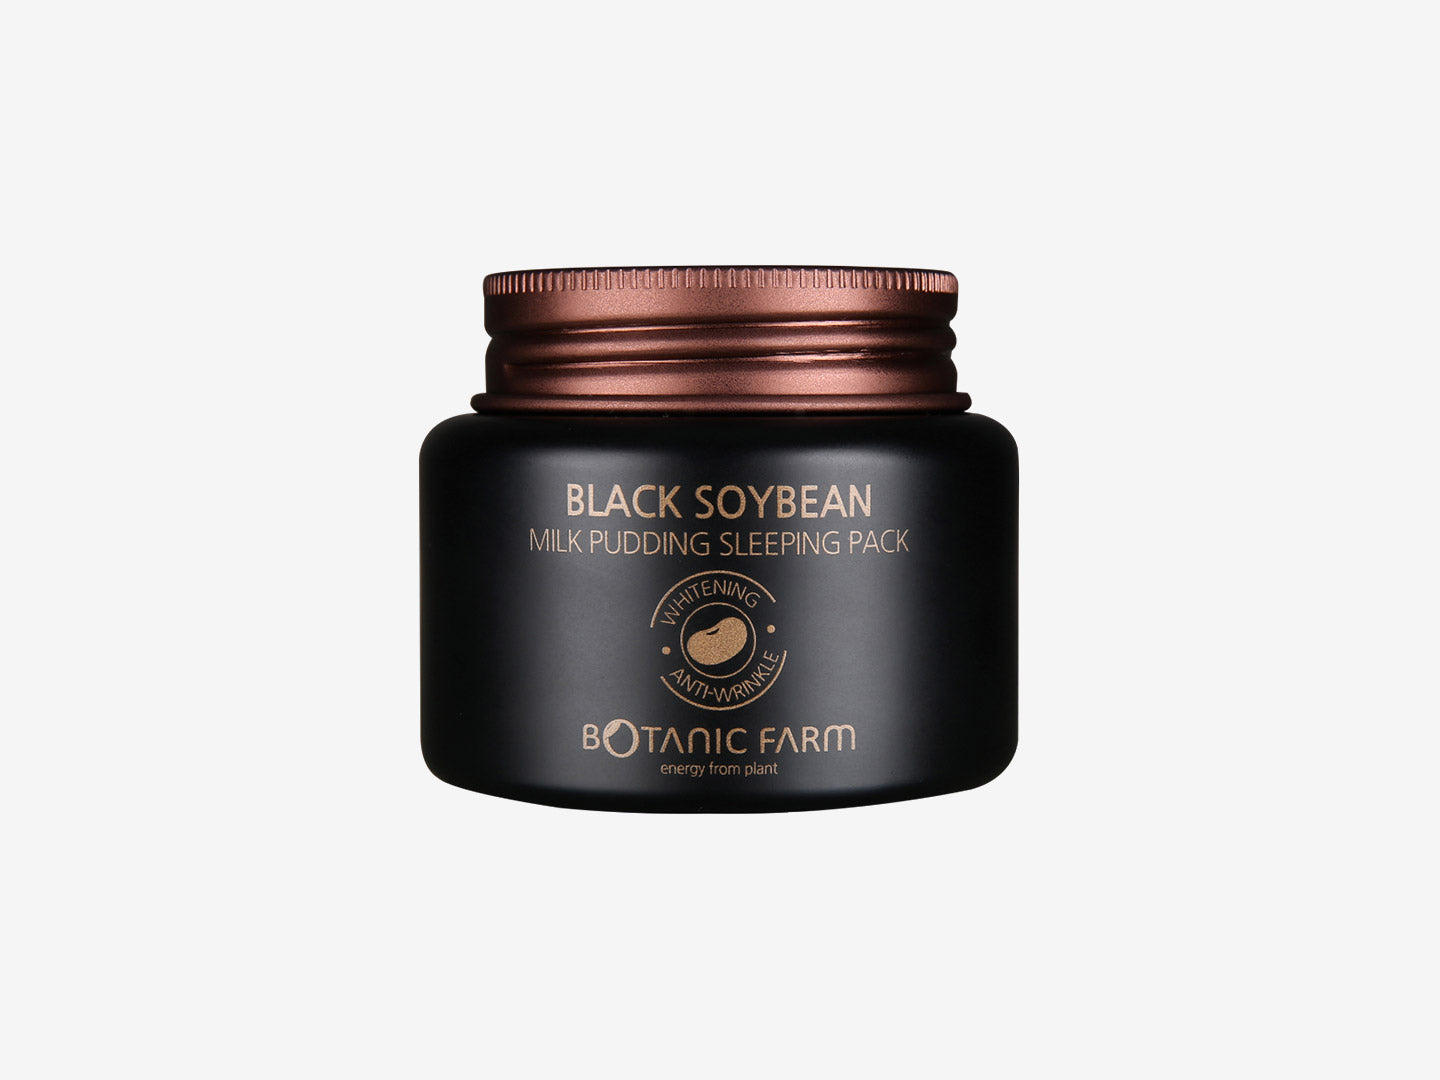 Black Soybean Milk Pudding Pack